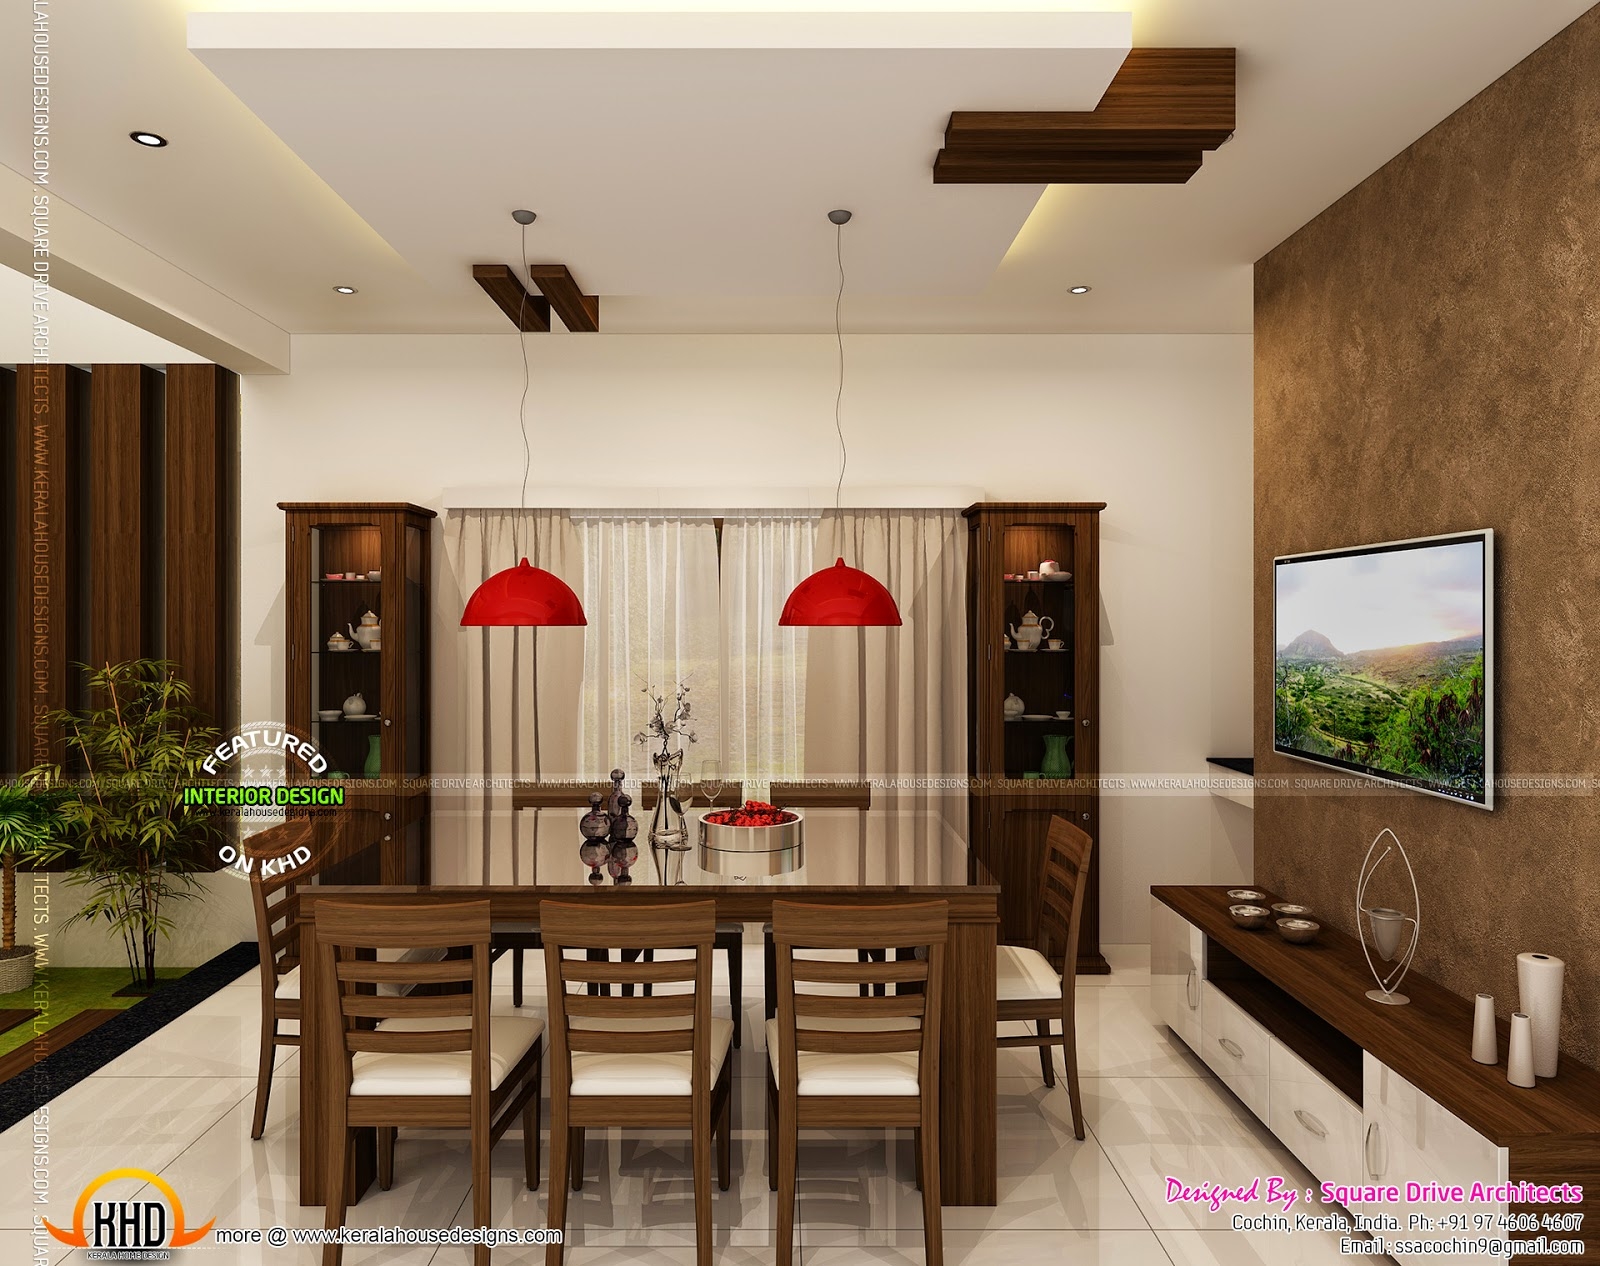 Home interiors designs kerala home design and floor plans for Interior design for hall and dining room